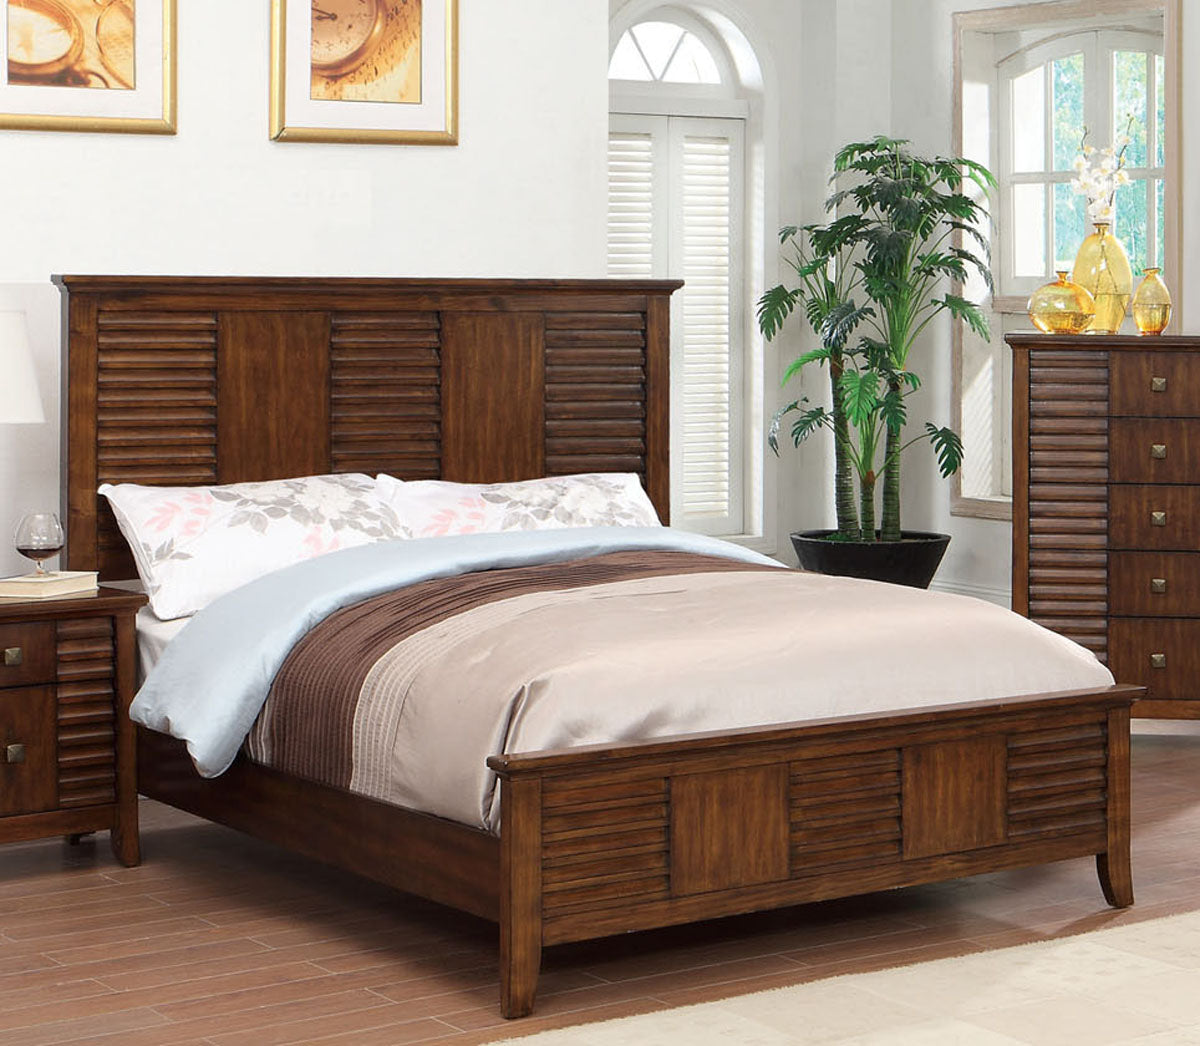 Furniture of America CM7981CK Eola Walnut Finish California King Bed